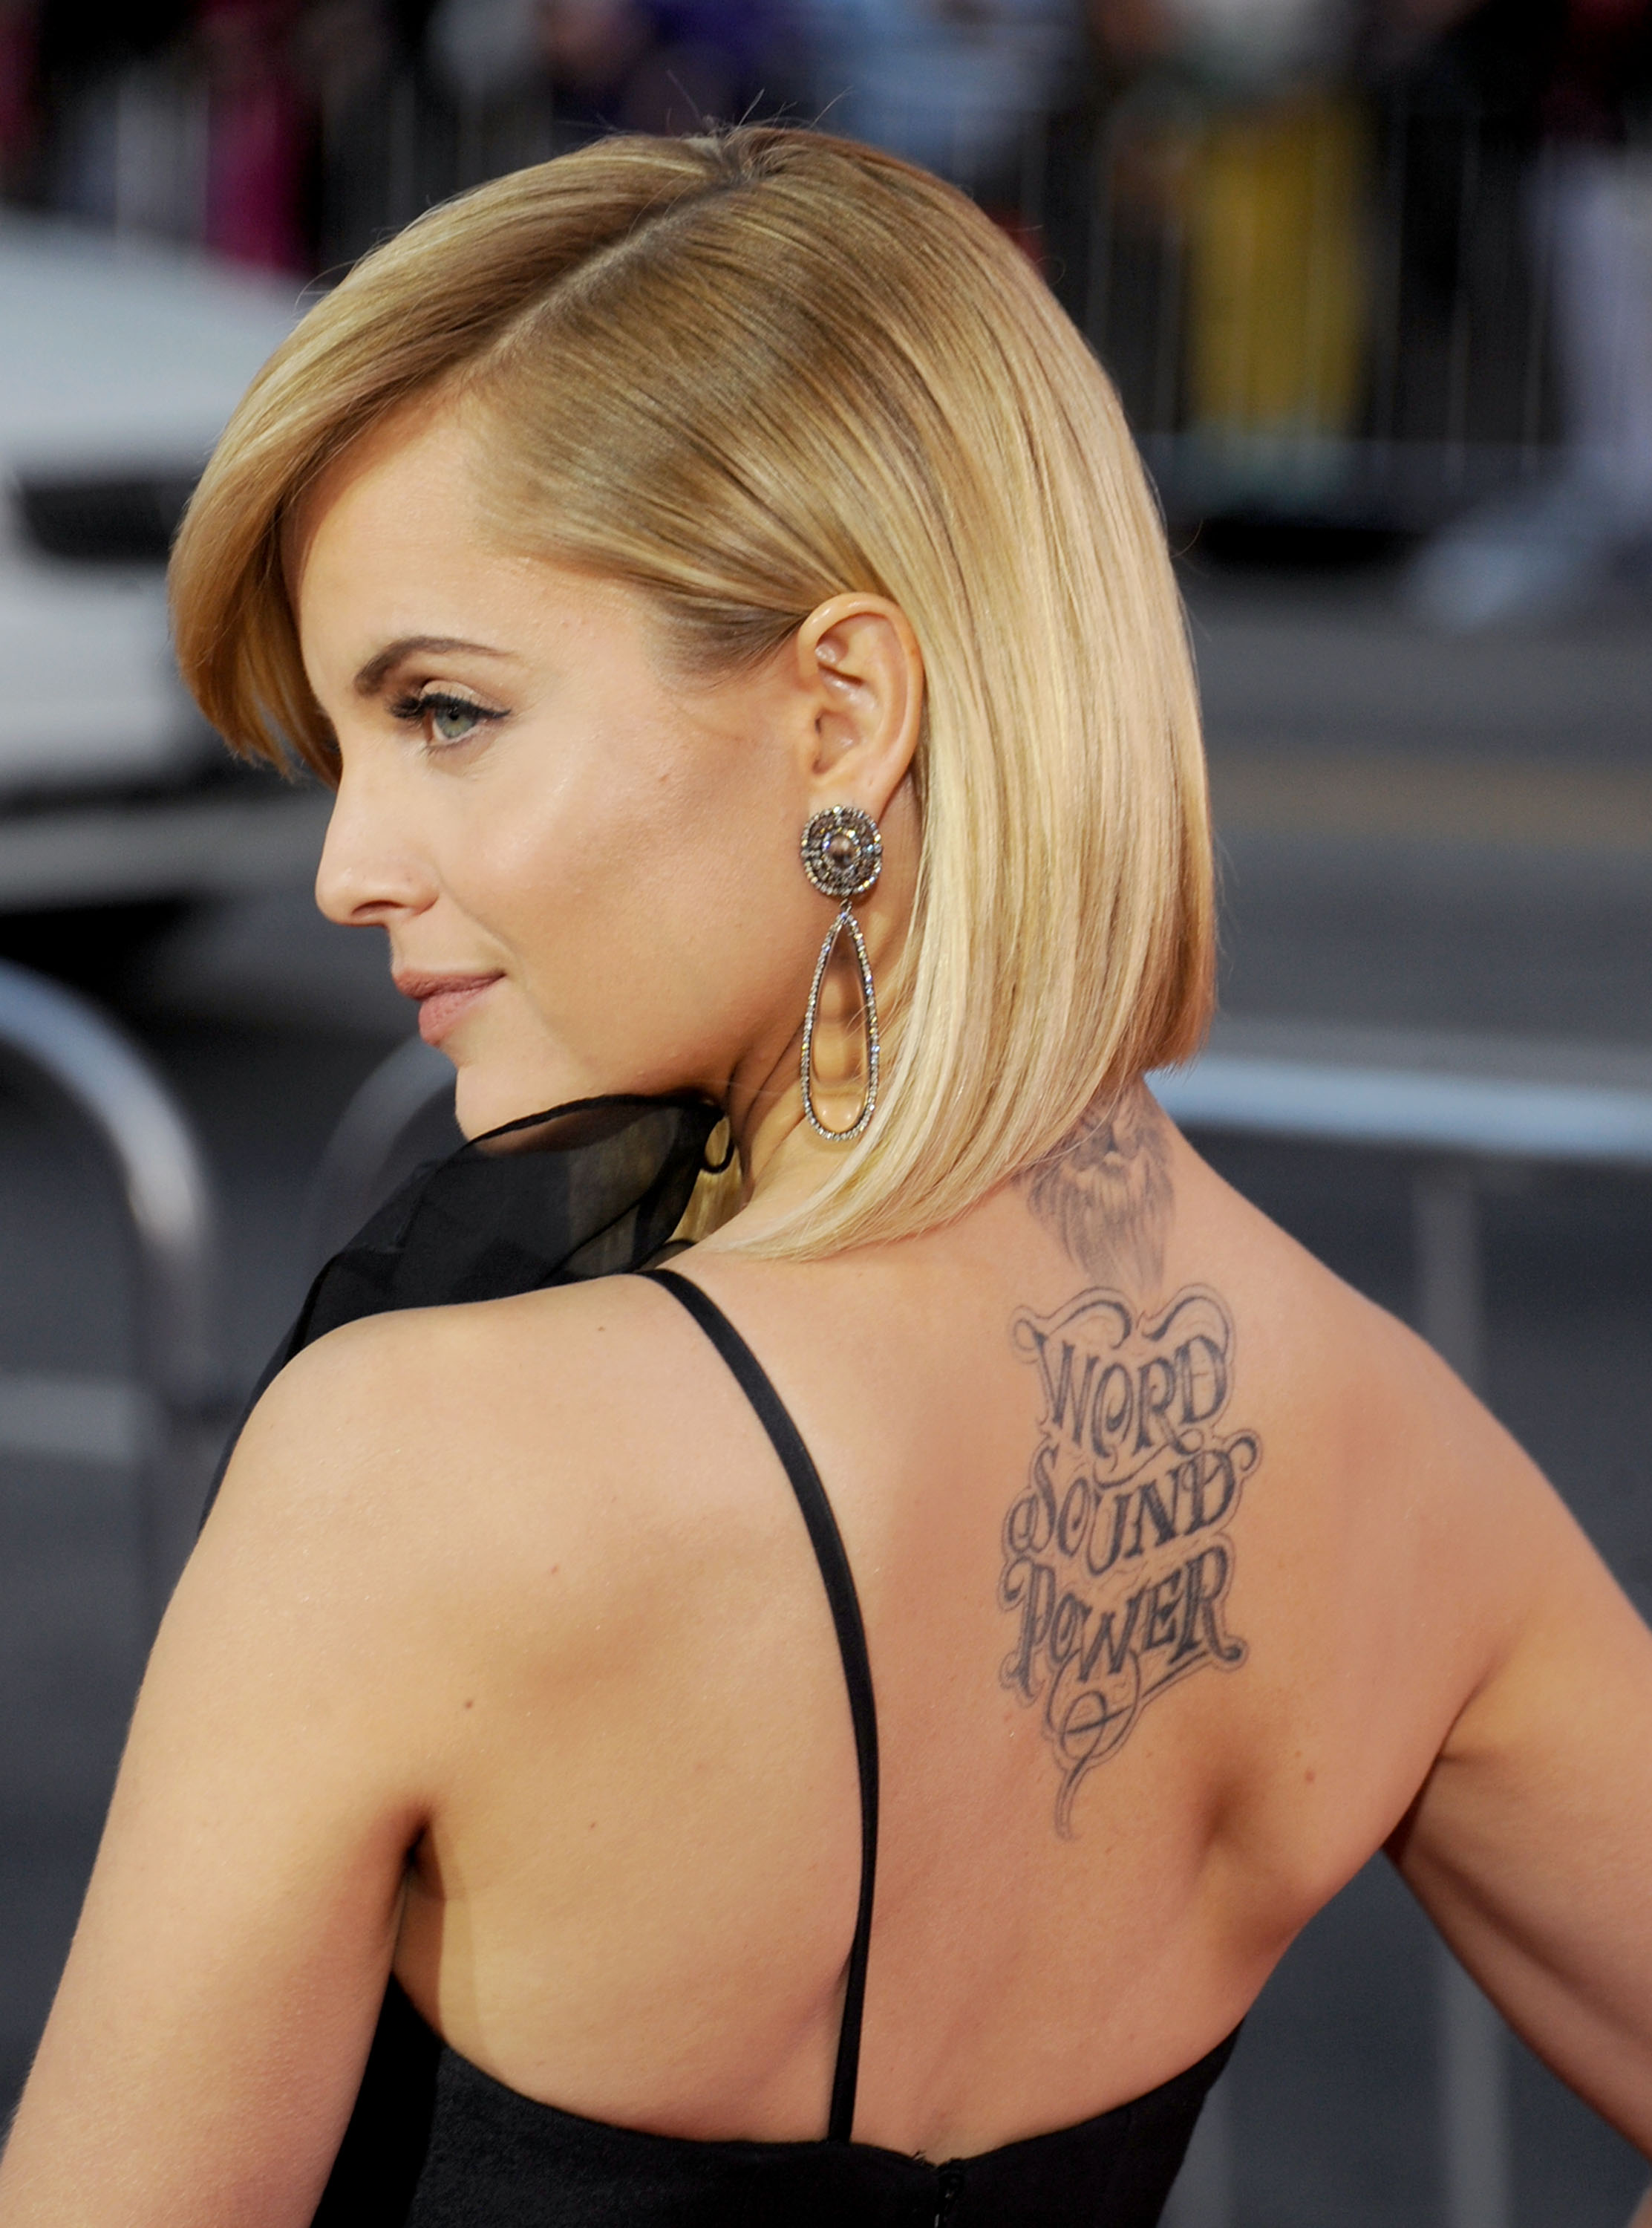 25 Famous Celebrities With Tattoos Specially For Fans 2019